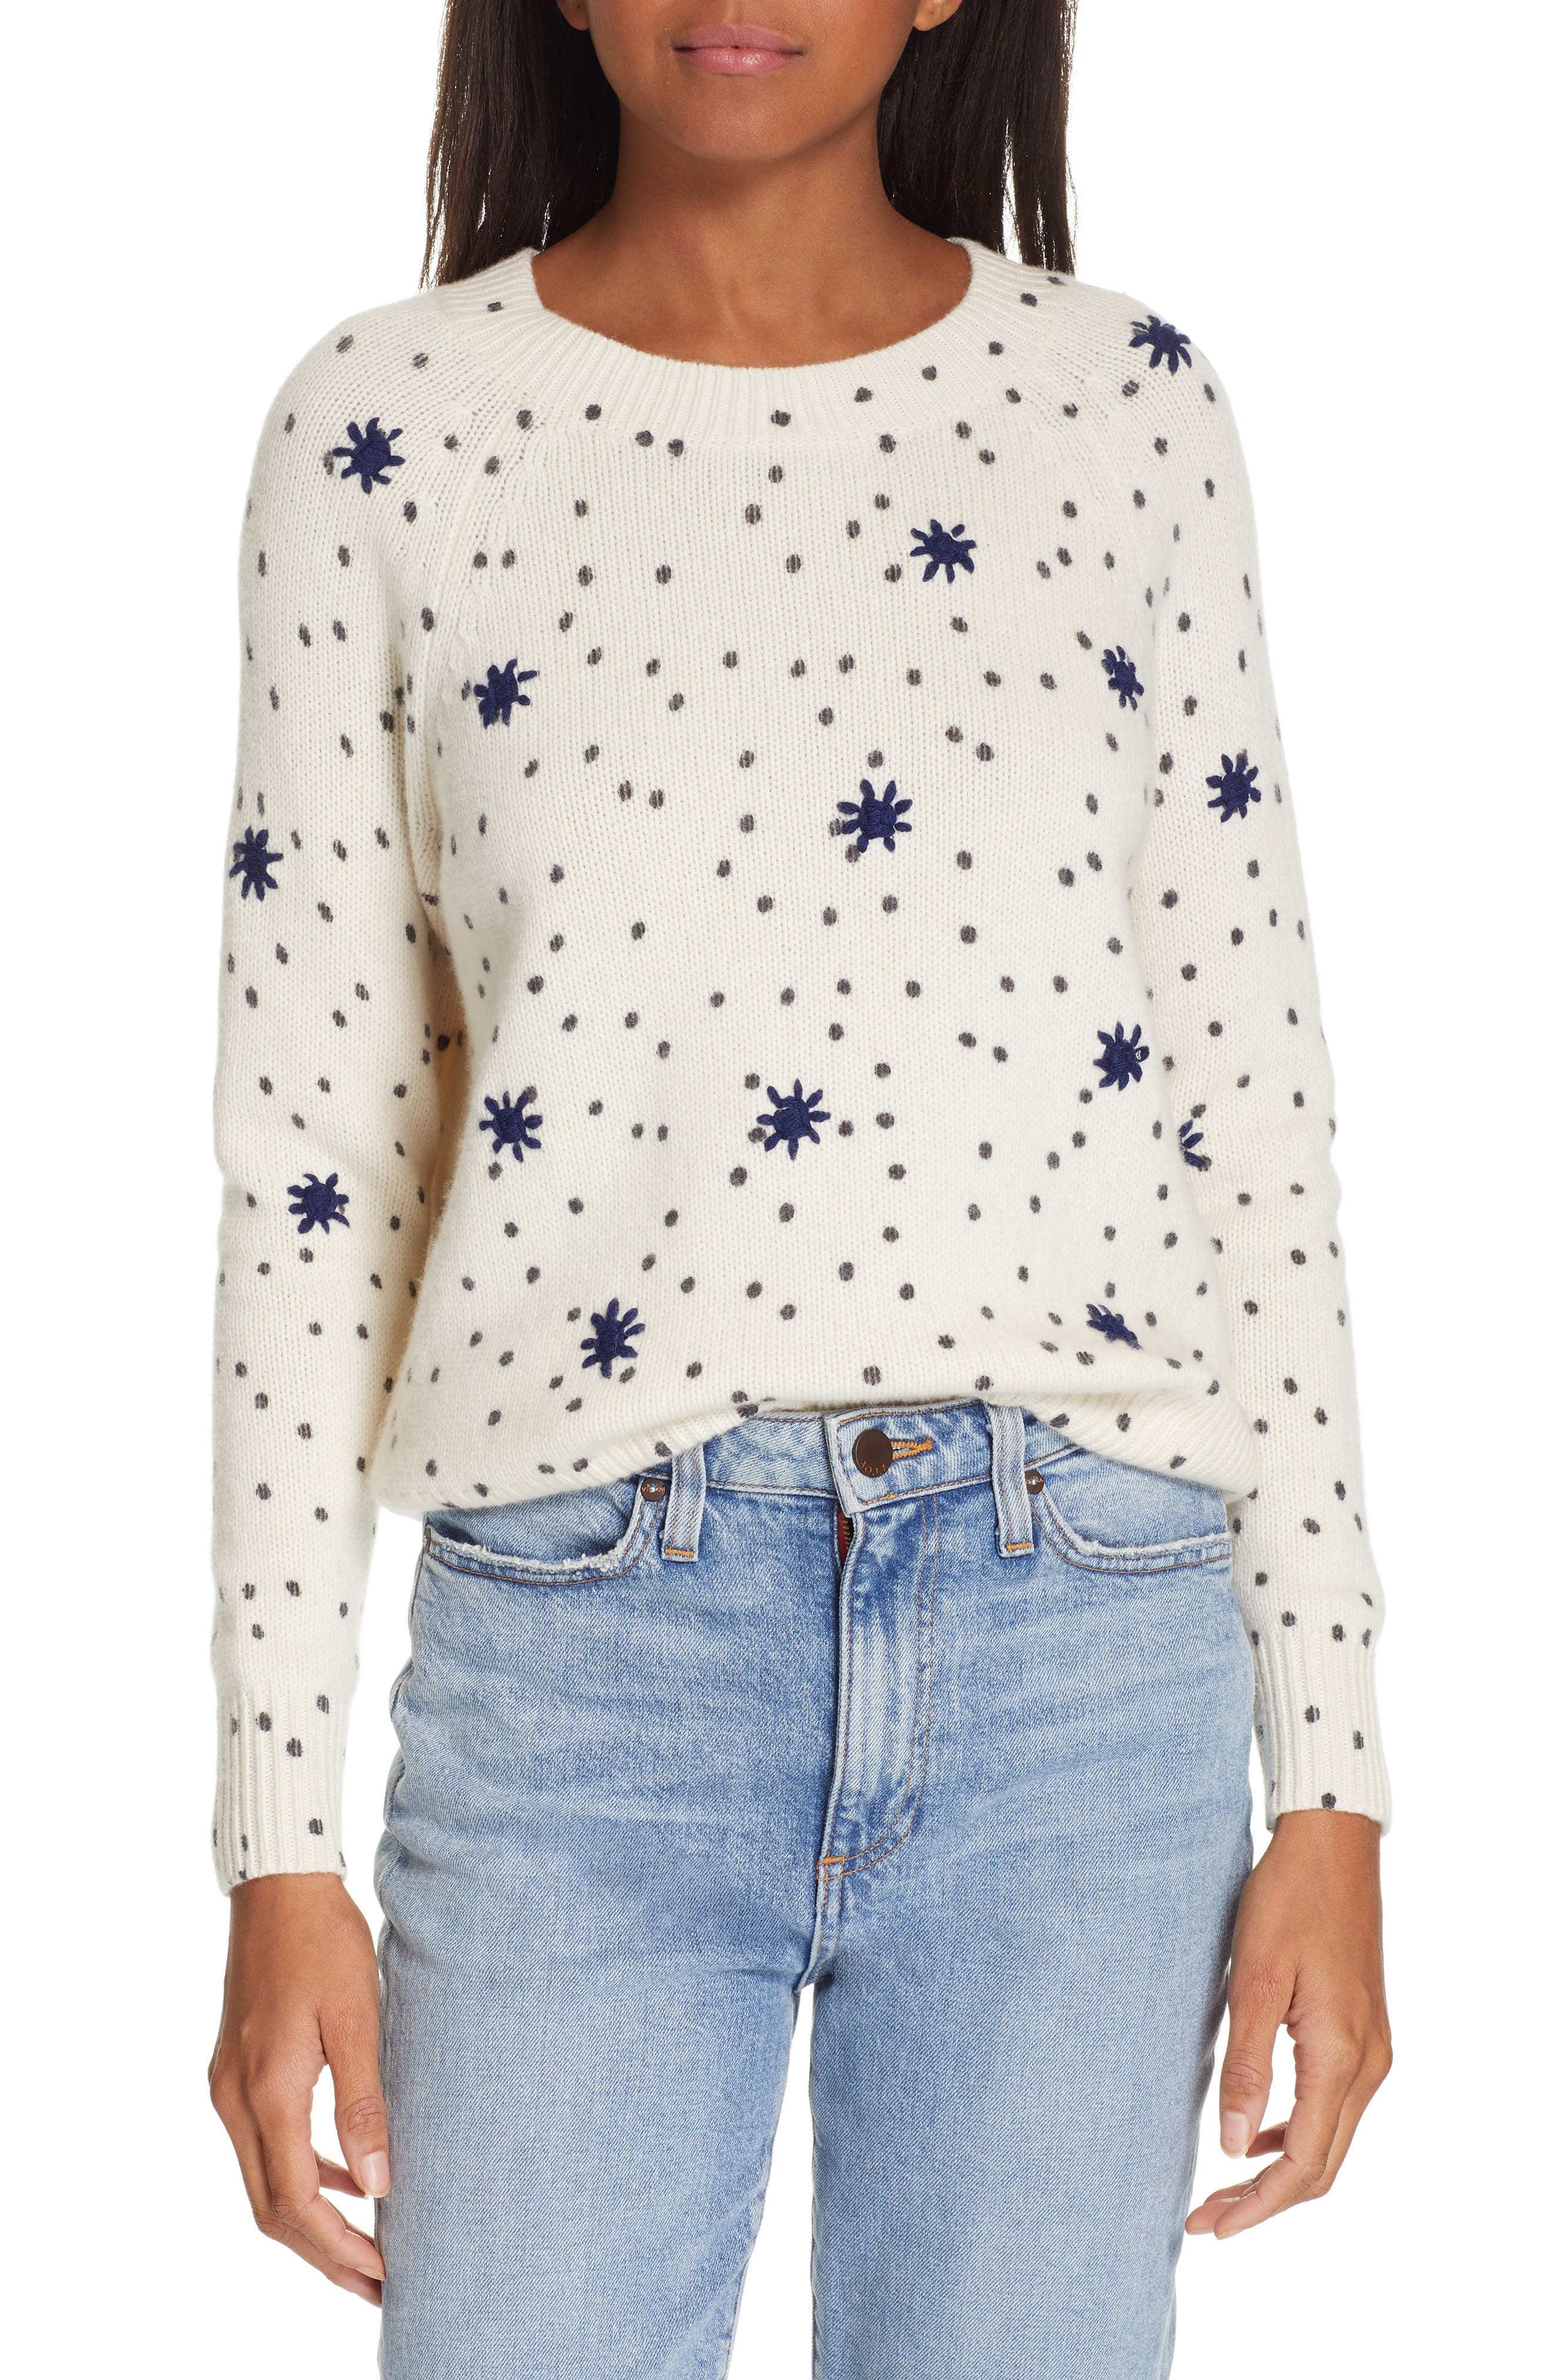 La Vie Rebecca Taylor Embroidered Dot Wool Blend Sweater, Ivory